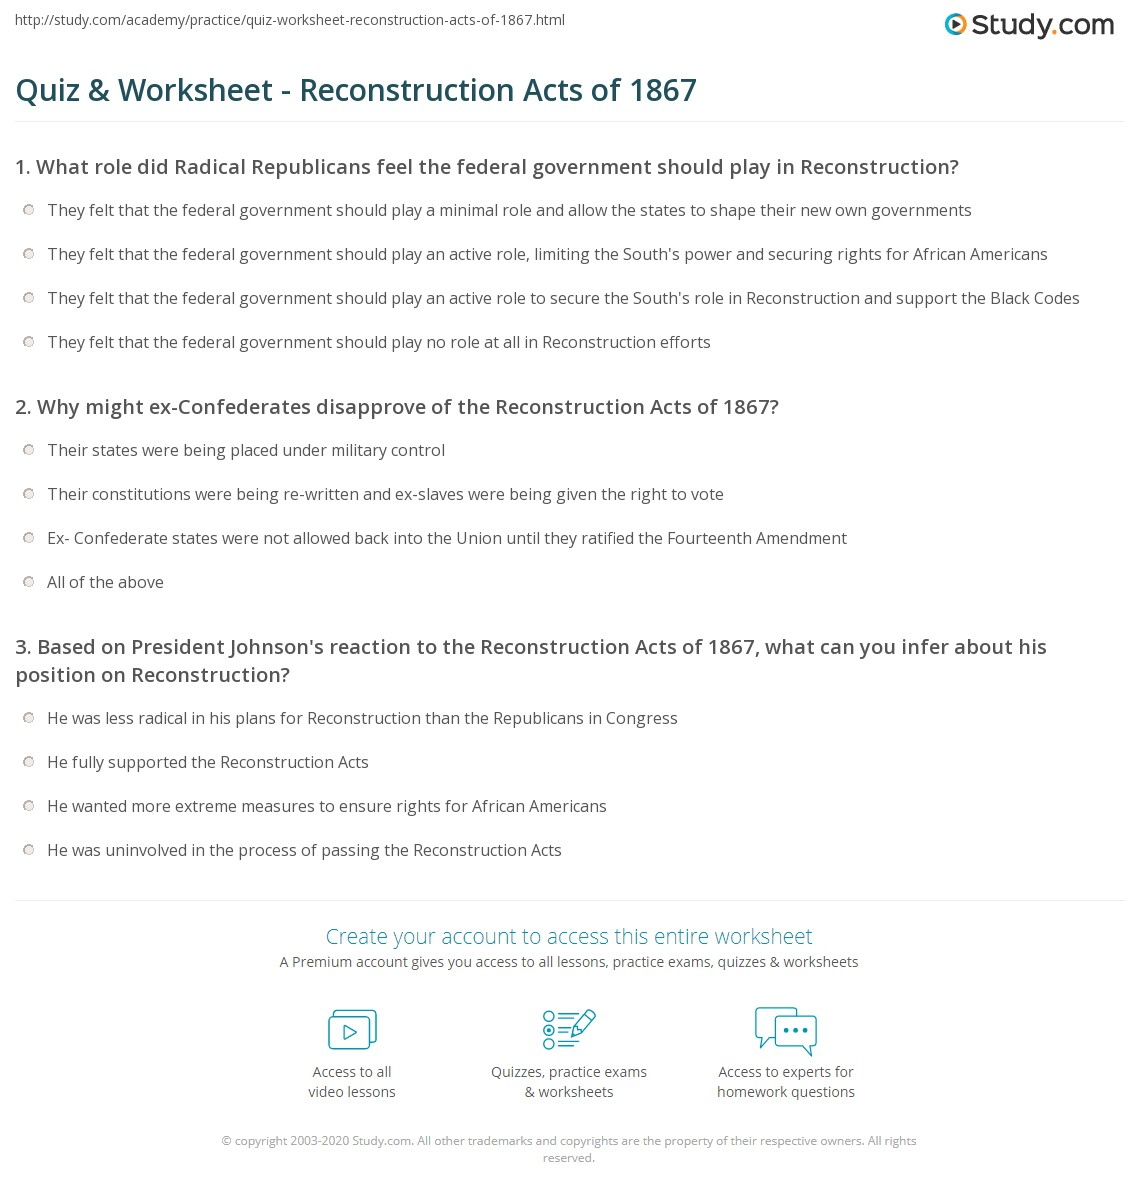 Quiz Worksheet Reconstruction Acts Of 1867 Studycom